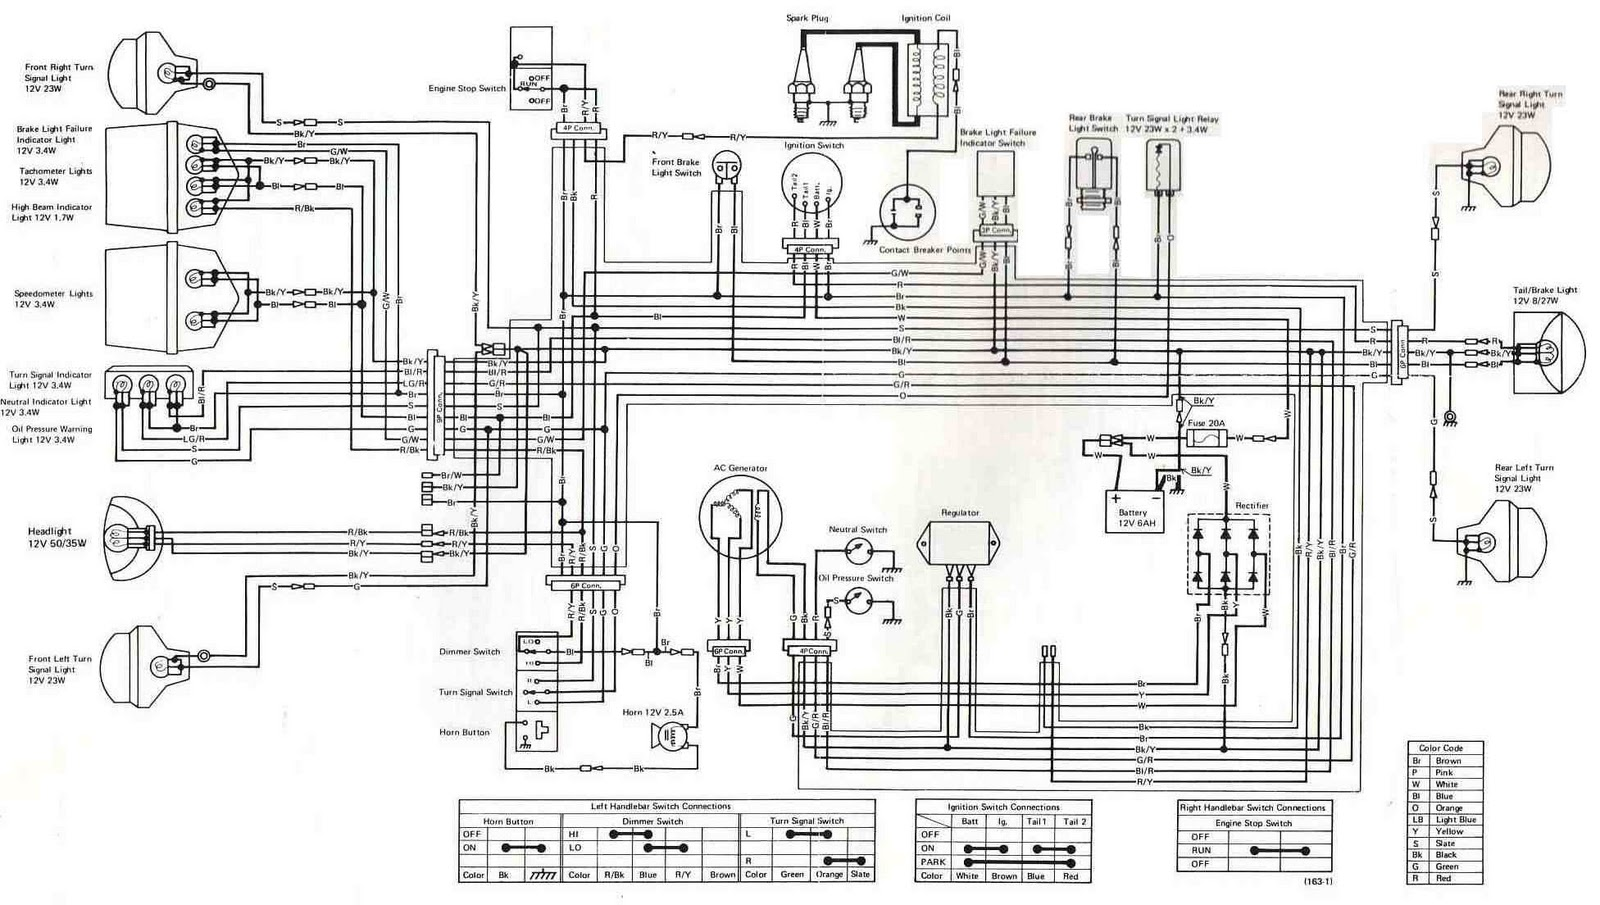 Kawasaki Wiring Diagram | Wiring Diagram on kz650 wiring diagram, z400 wiring diagram, klr650 wiring diagram, ninja 250r wiring diagram, z1000 wiring diagram, fj1100 wiring diagram, kz1000 wiring diagram, kz440 wiring diagram, zx7r wiring diagram, gs 750 wiring diagram, kz750 wiring diagram, kz400 wiring diagram, xs650 wiring diagram, honda wiring diagram, zl1000 wiring diagram, ex500 wiring diagram, ex250 wiring diagram, vulcan 1500 wiring diagram, kz200 wiring diagram, ke175 wiring diagram,